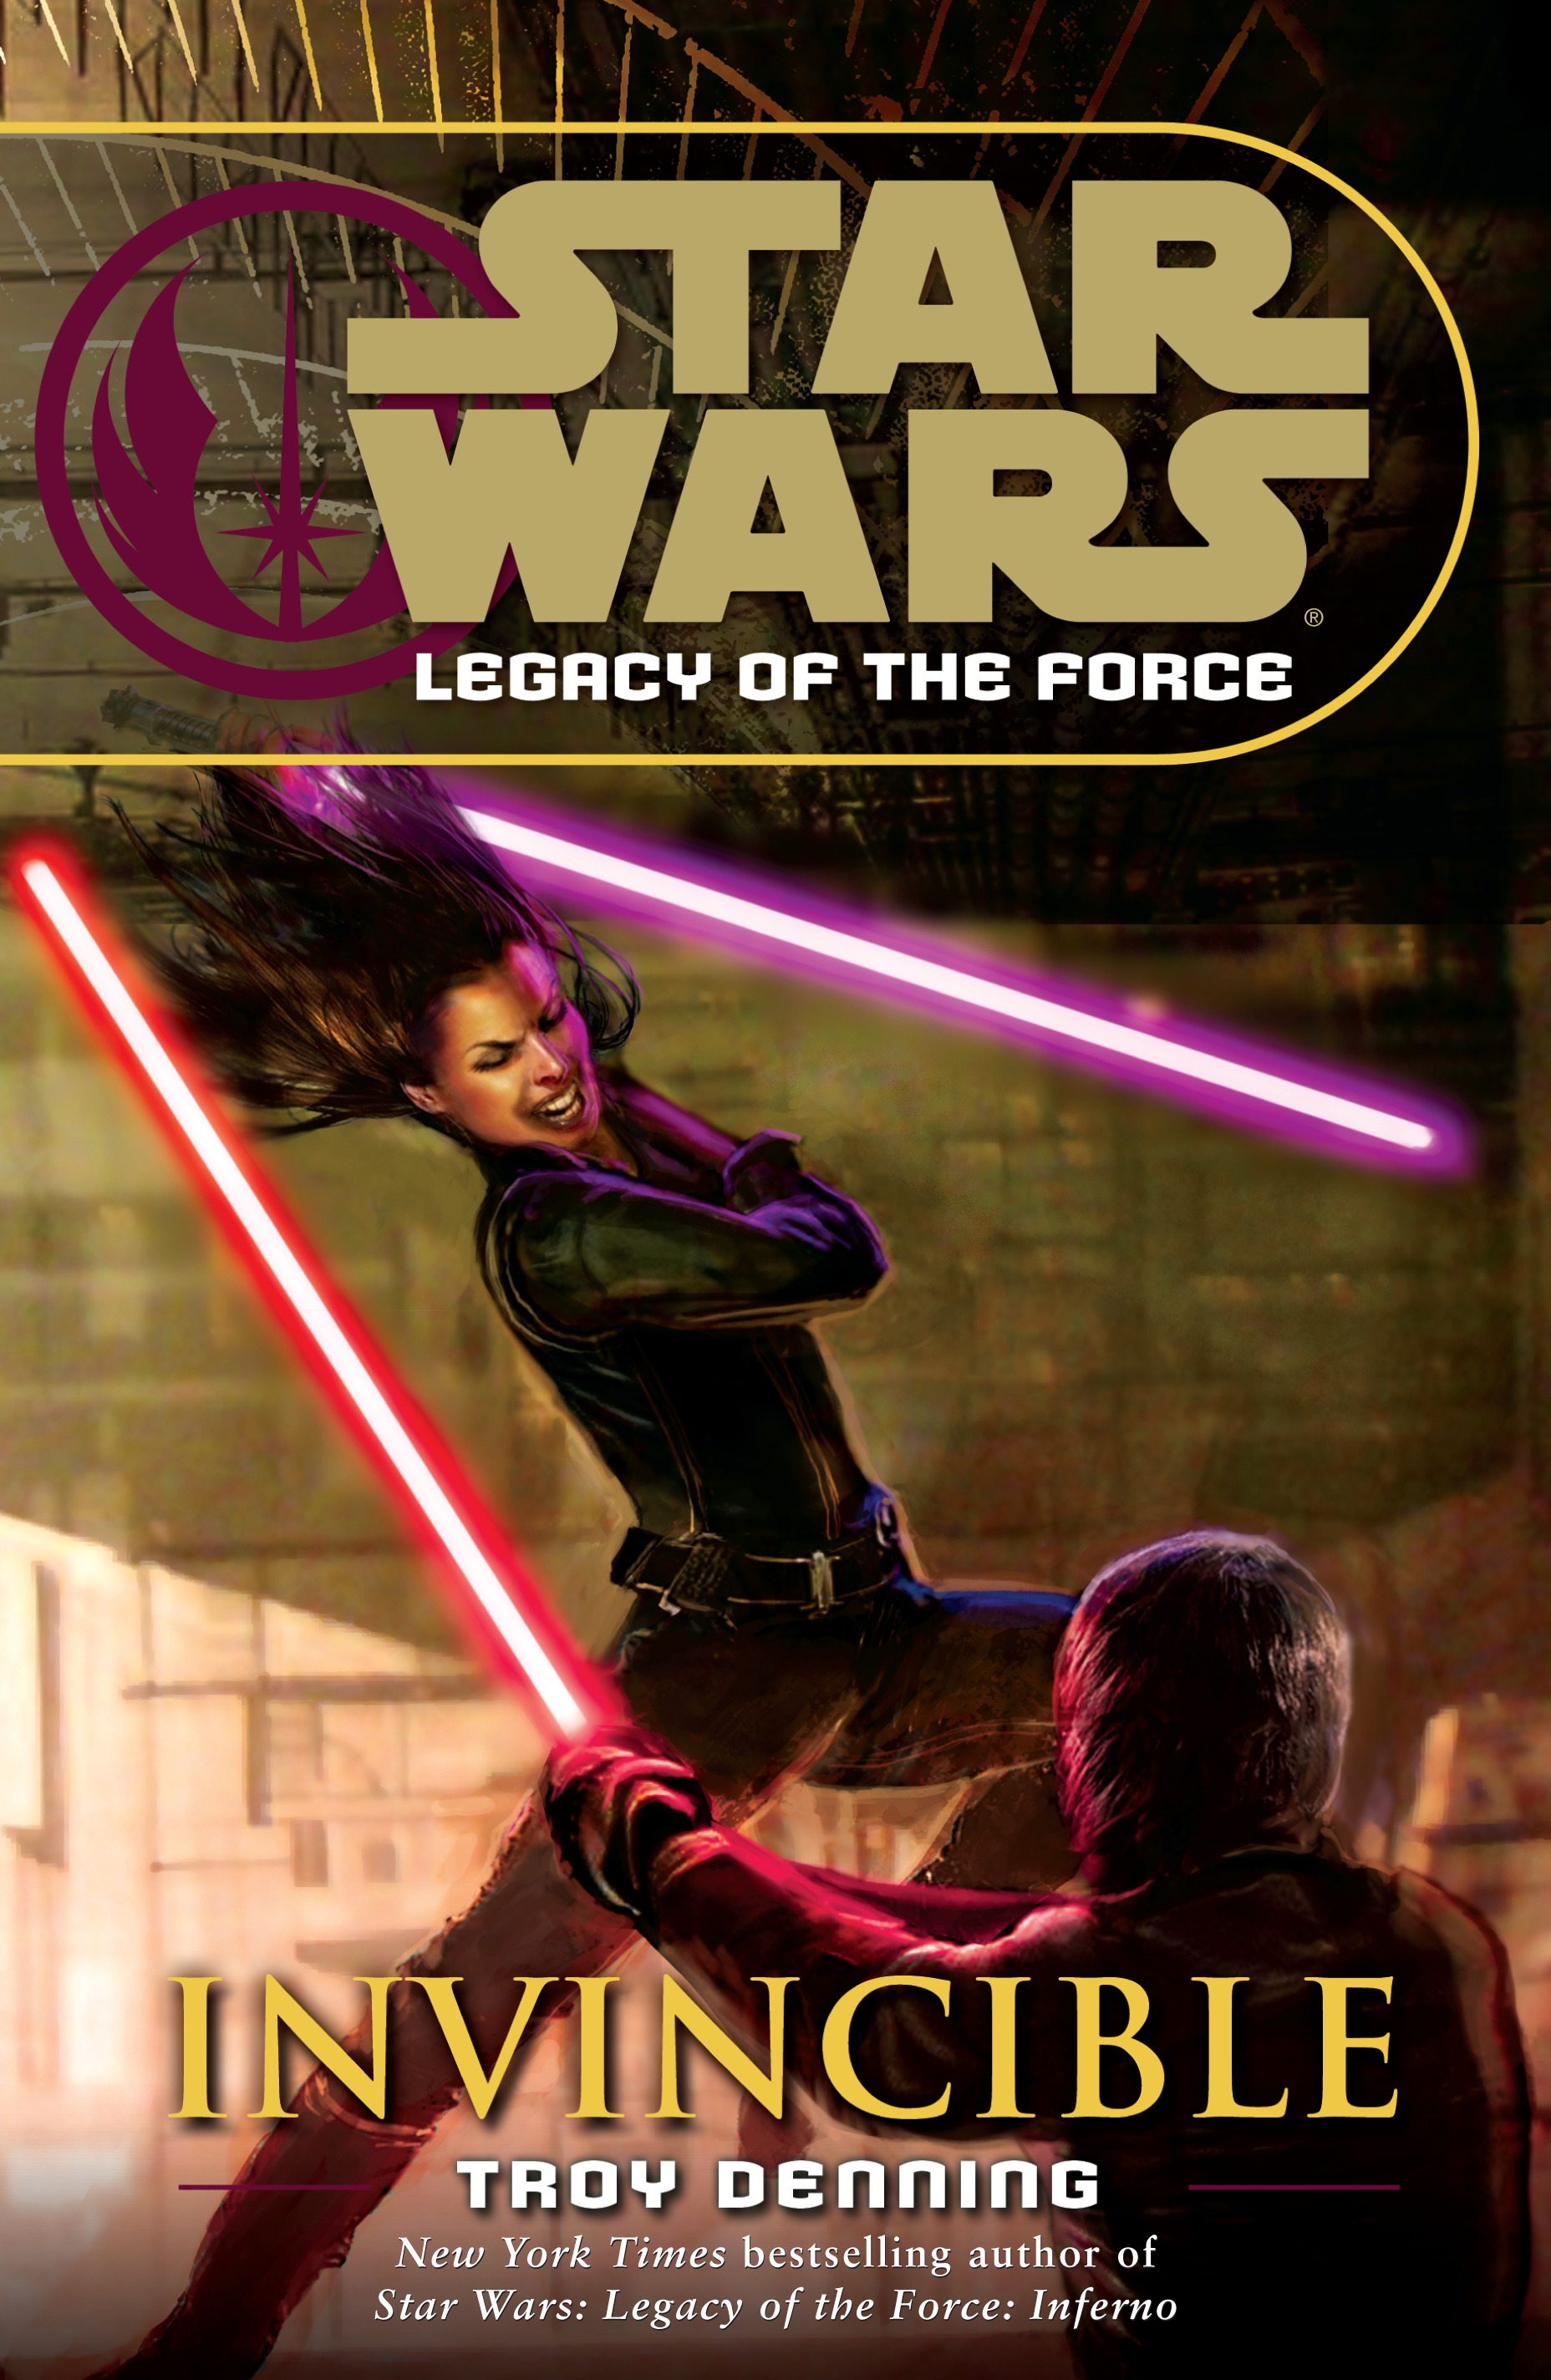 Star Wars Legacy of the Force: Invincible